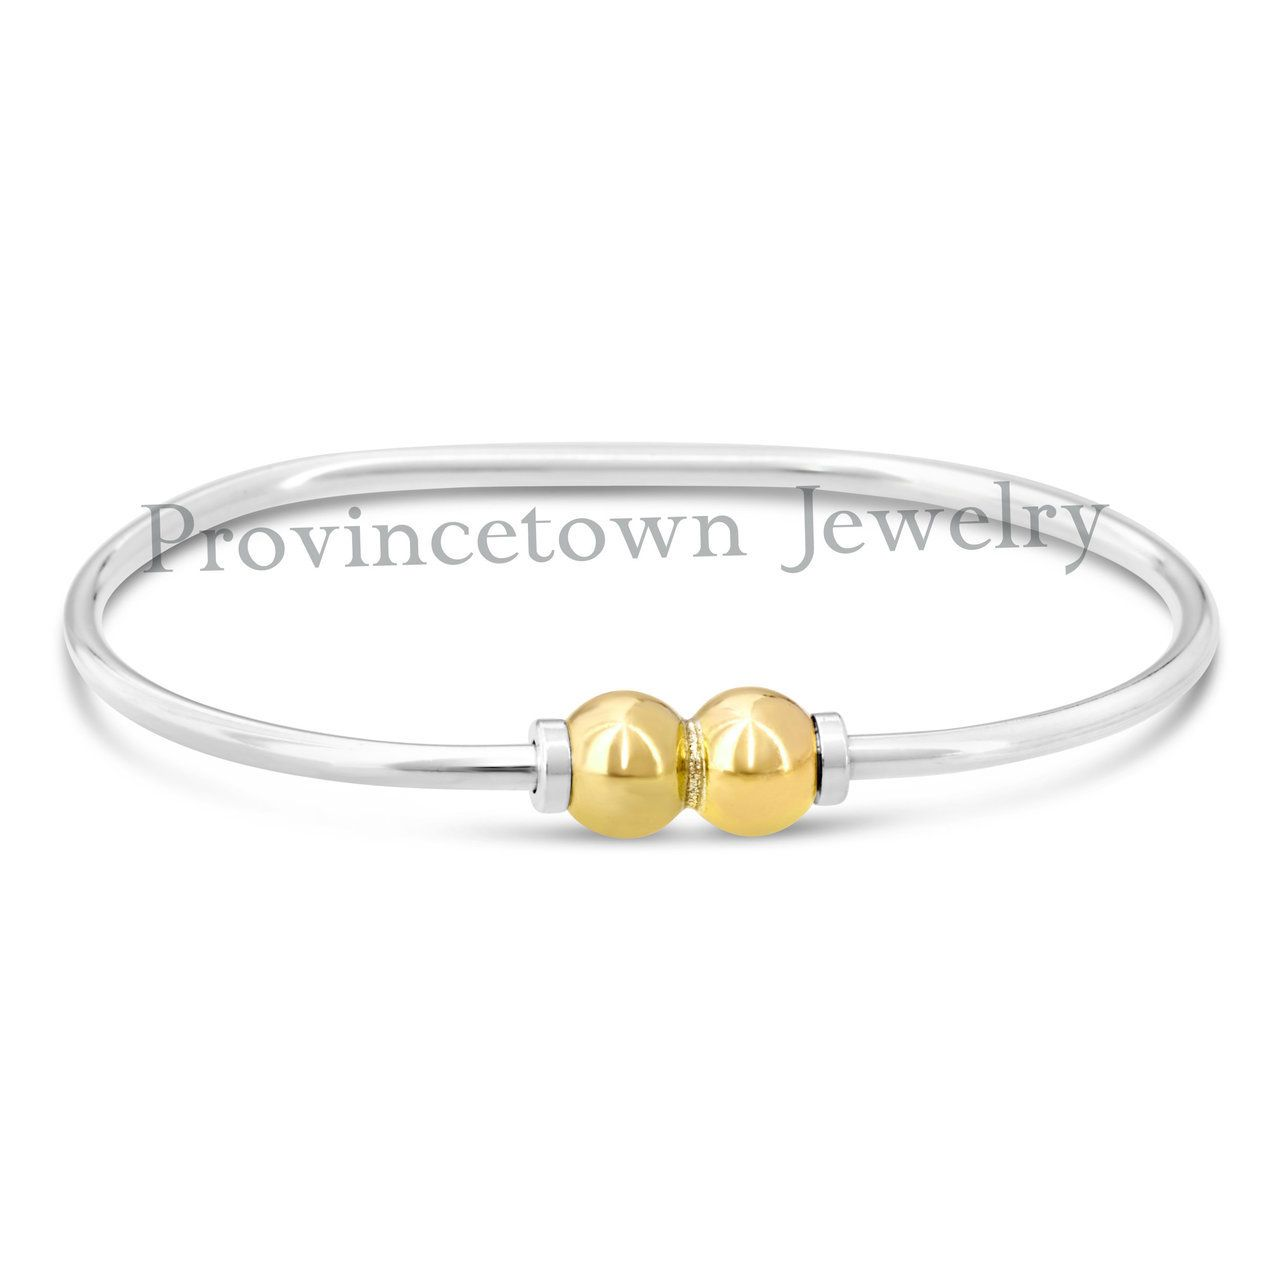 Cape Cod Two Ball Two Tone Bracelet 925 Sterling Silver And 14k Two Balls   Provincetown